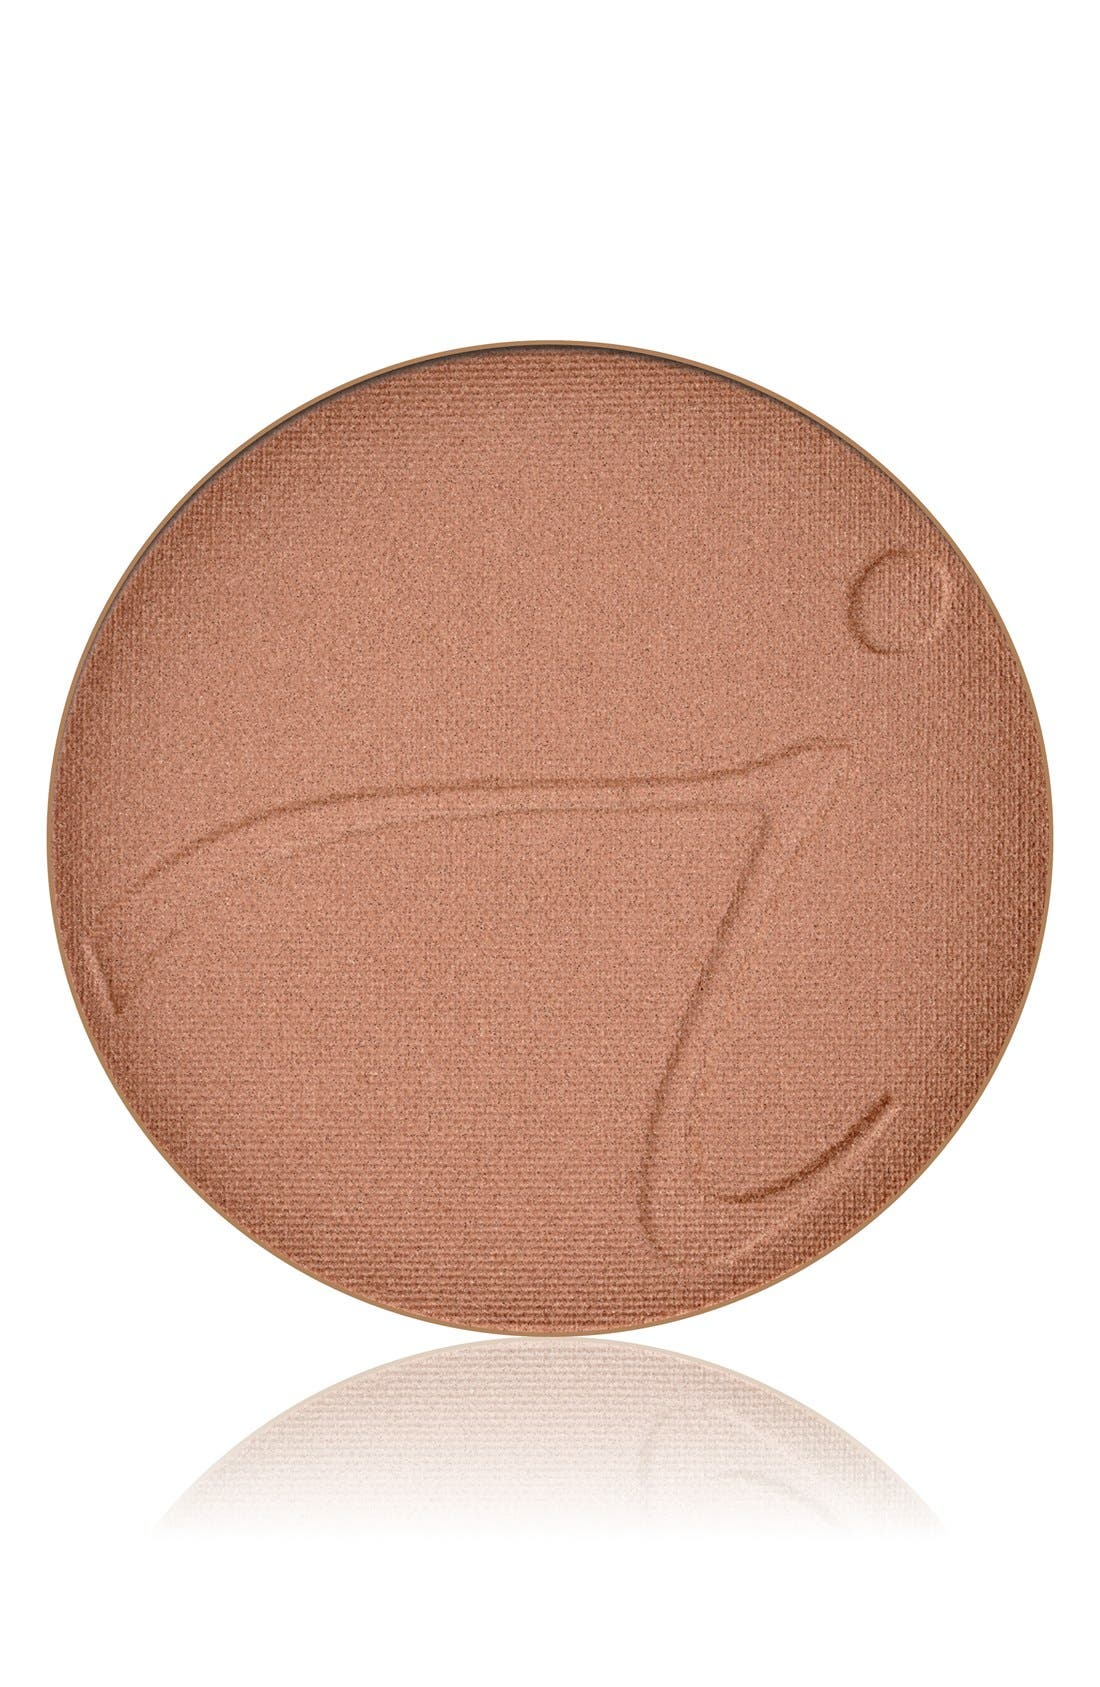 jane iredale So-Bronze® 1 Bronzing Powder Refill